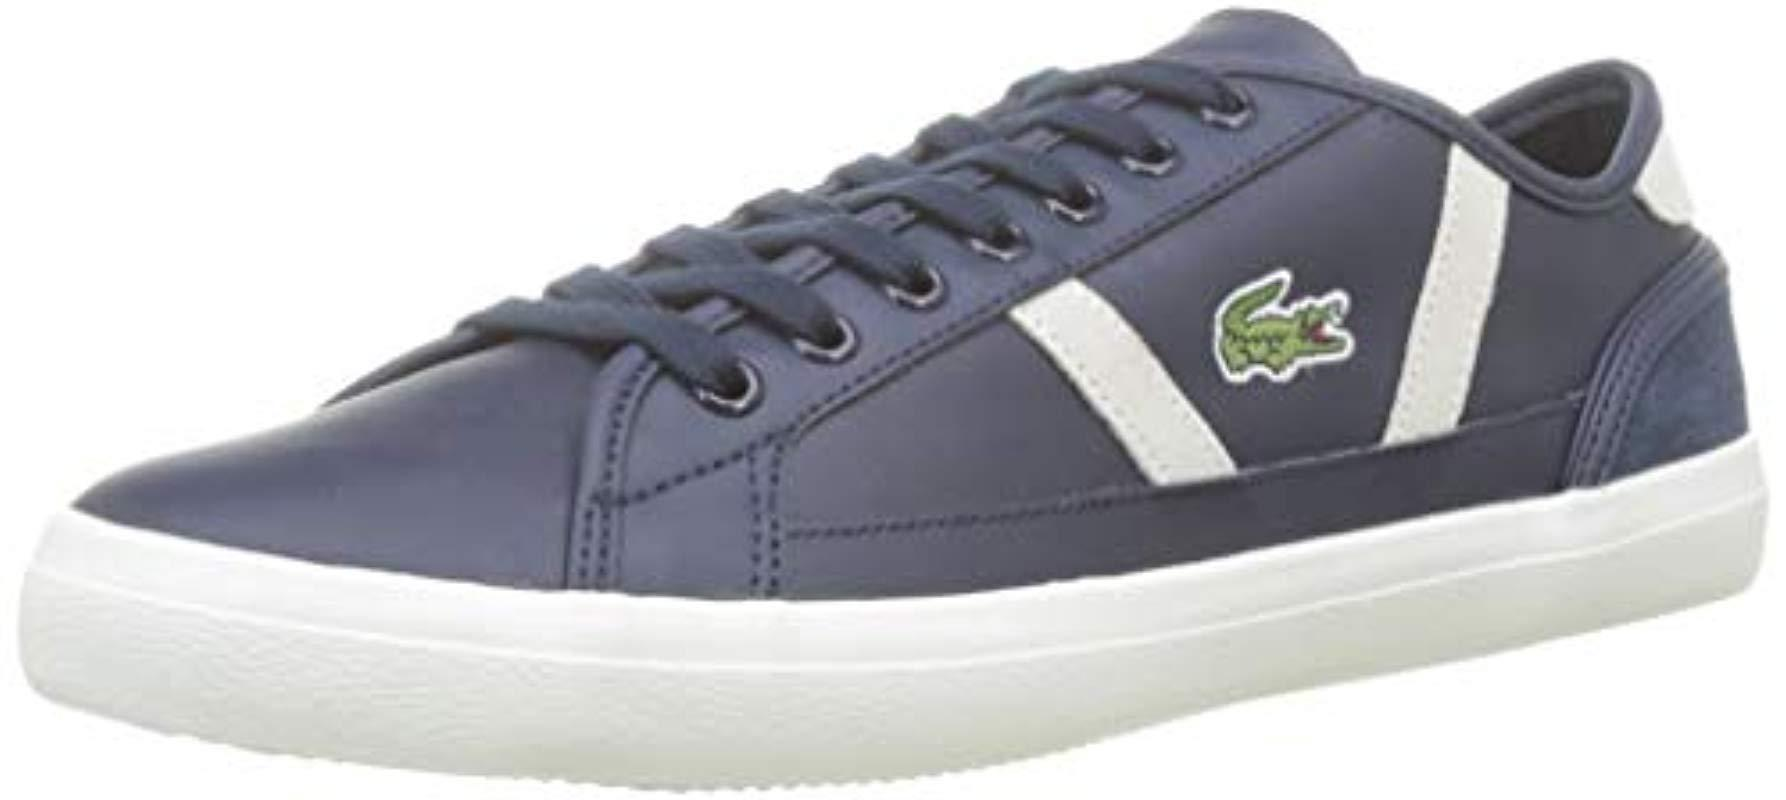 superior quality 3b066 a9ae2 Lacoste Sideline 119 3 Cma Trainers in Blue for Men - Lyst